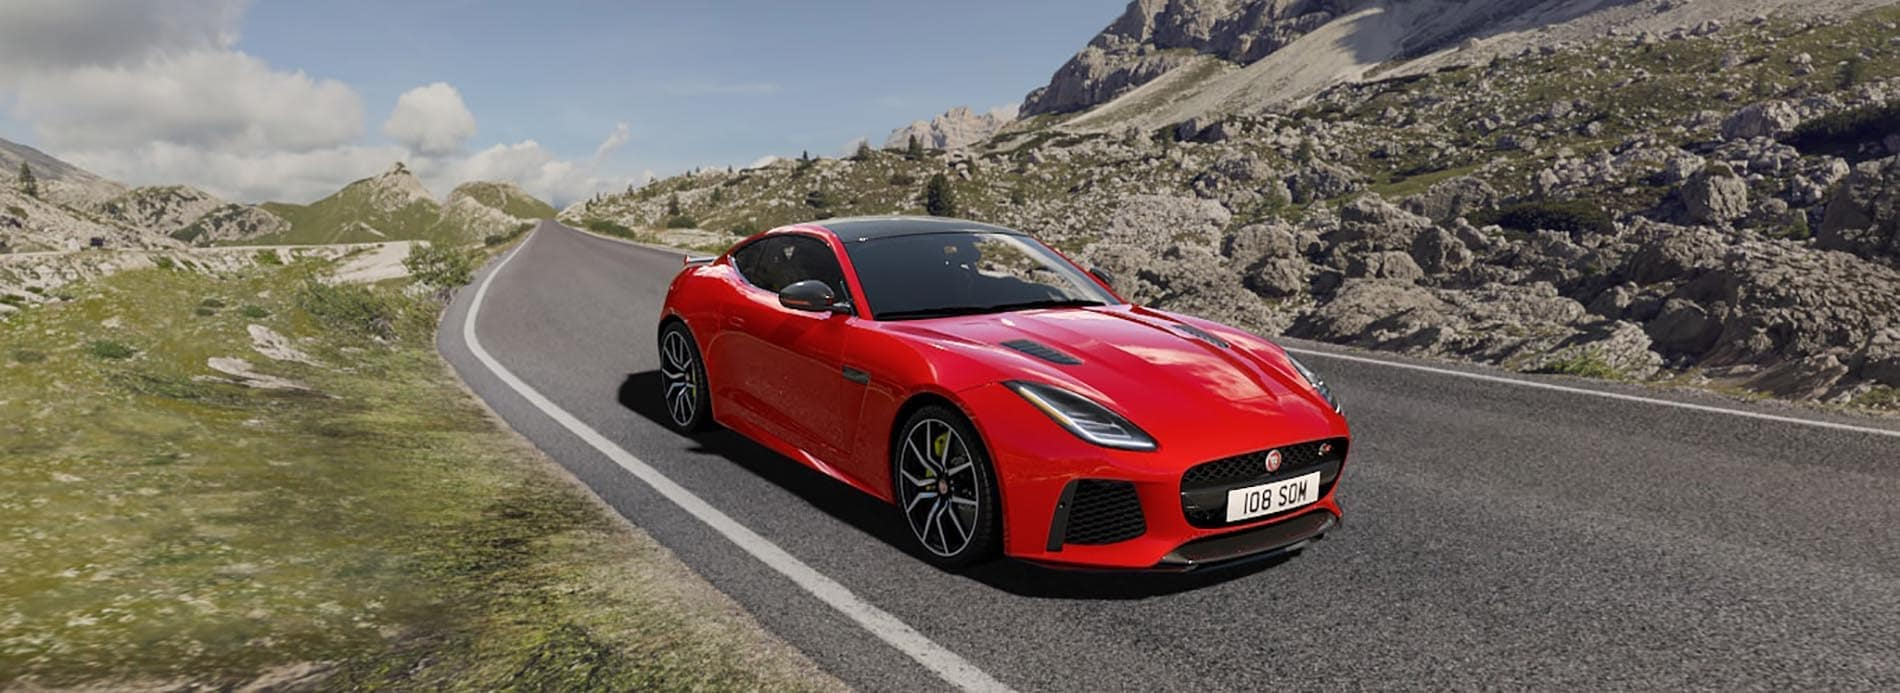 2019 Jaguar F-TYPE hero